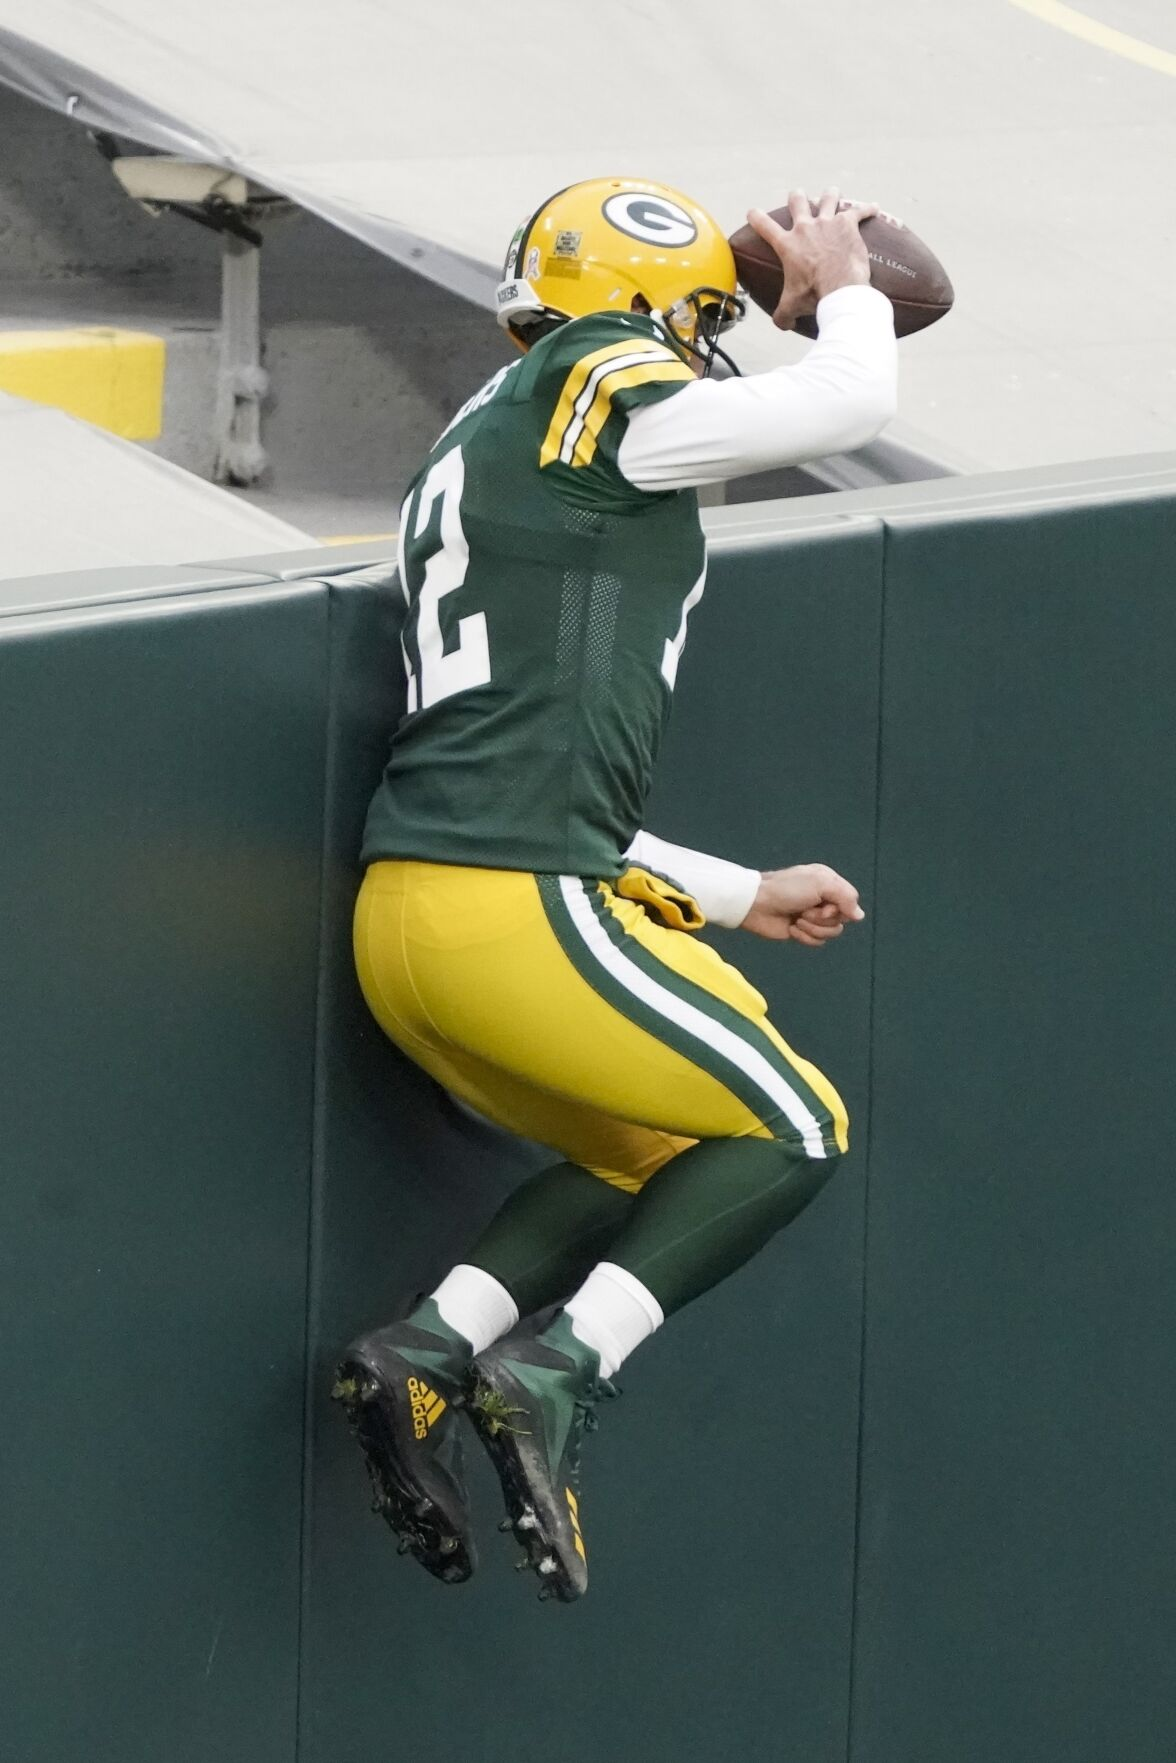 rodgers leap 11-26